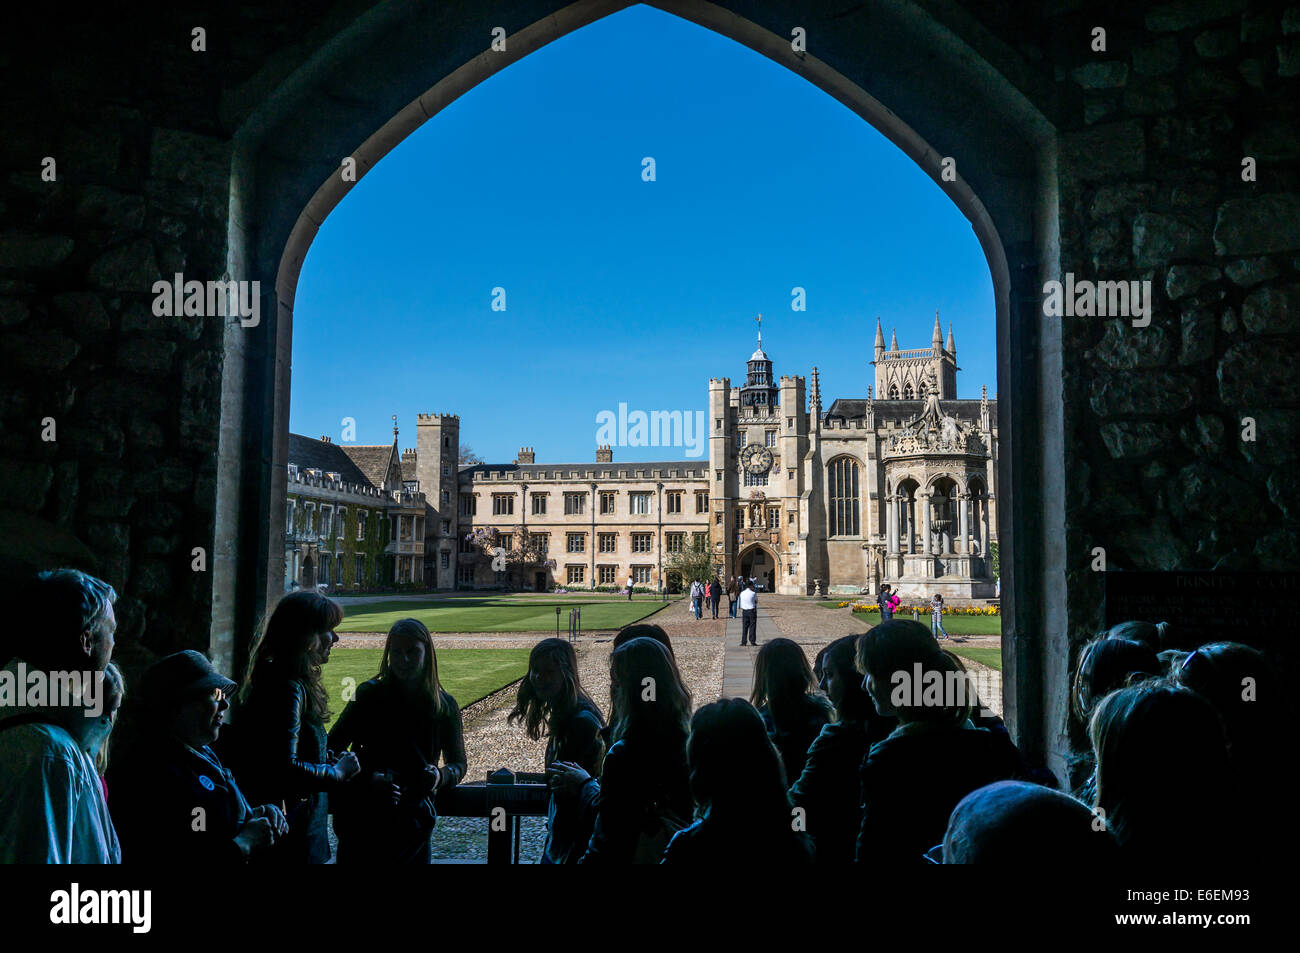 A crowd of tourists looking through a stone archway at Trinity College and the Grand Court, University of Cambridge, - Stock Image